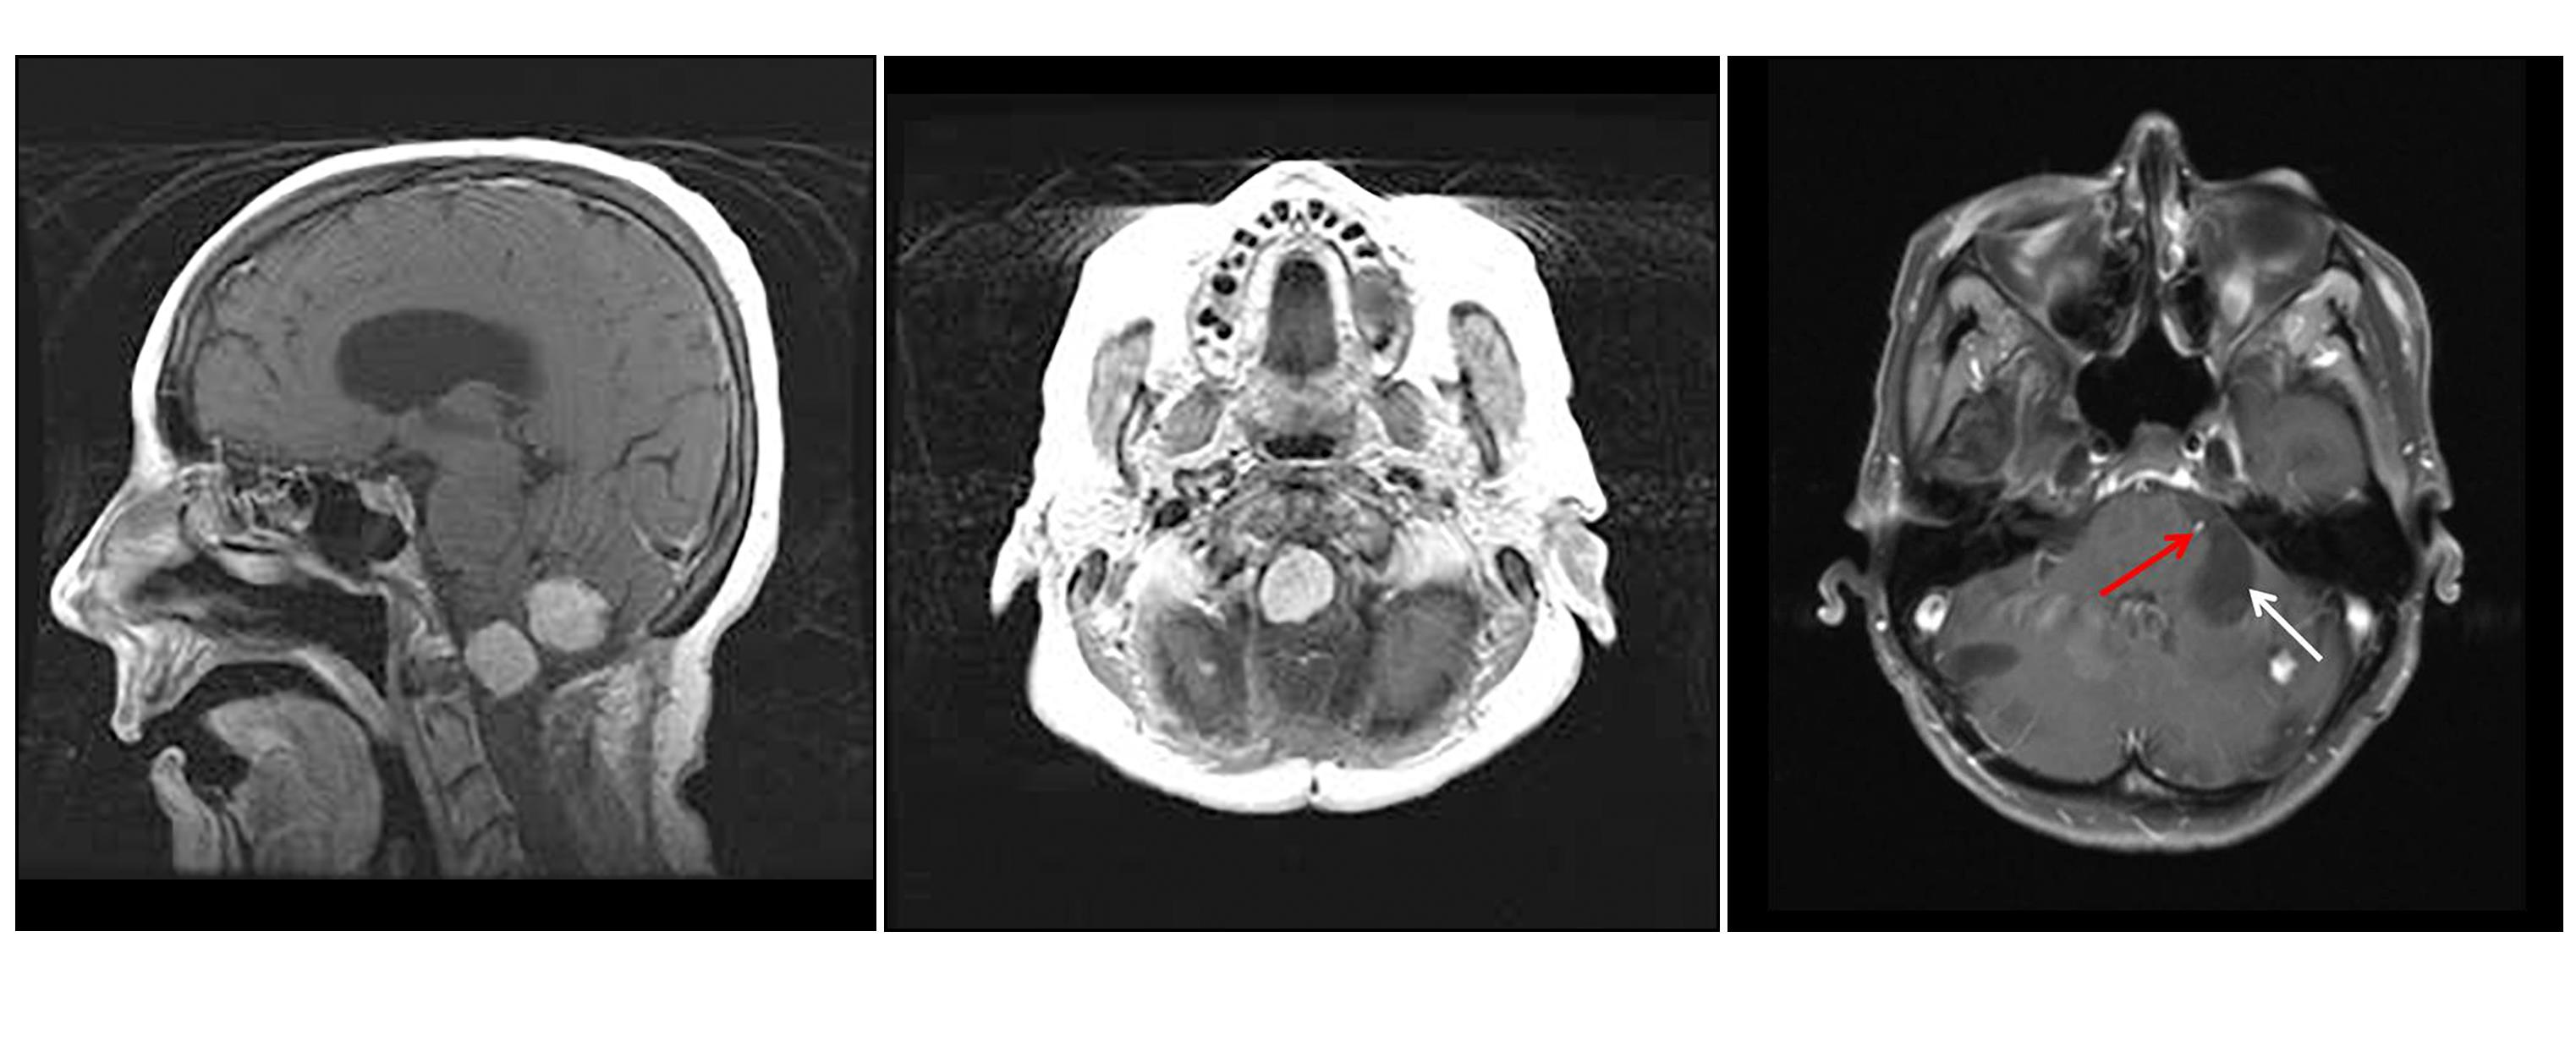 Three-panel image showing a sagittal view of two prominent light-colored brainstem and cerebellar lesions (left panel), an axial view of a prominent brainstem lesion (middle panel), and an axial view of a cerebellar lesion with a large, dark area that is a cystic component (right panel).